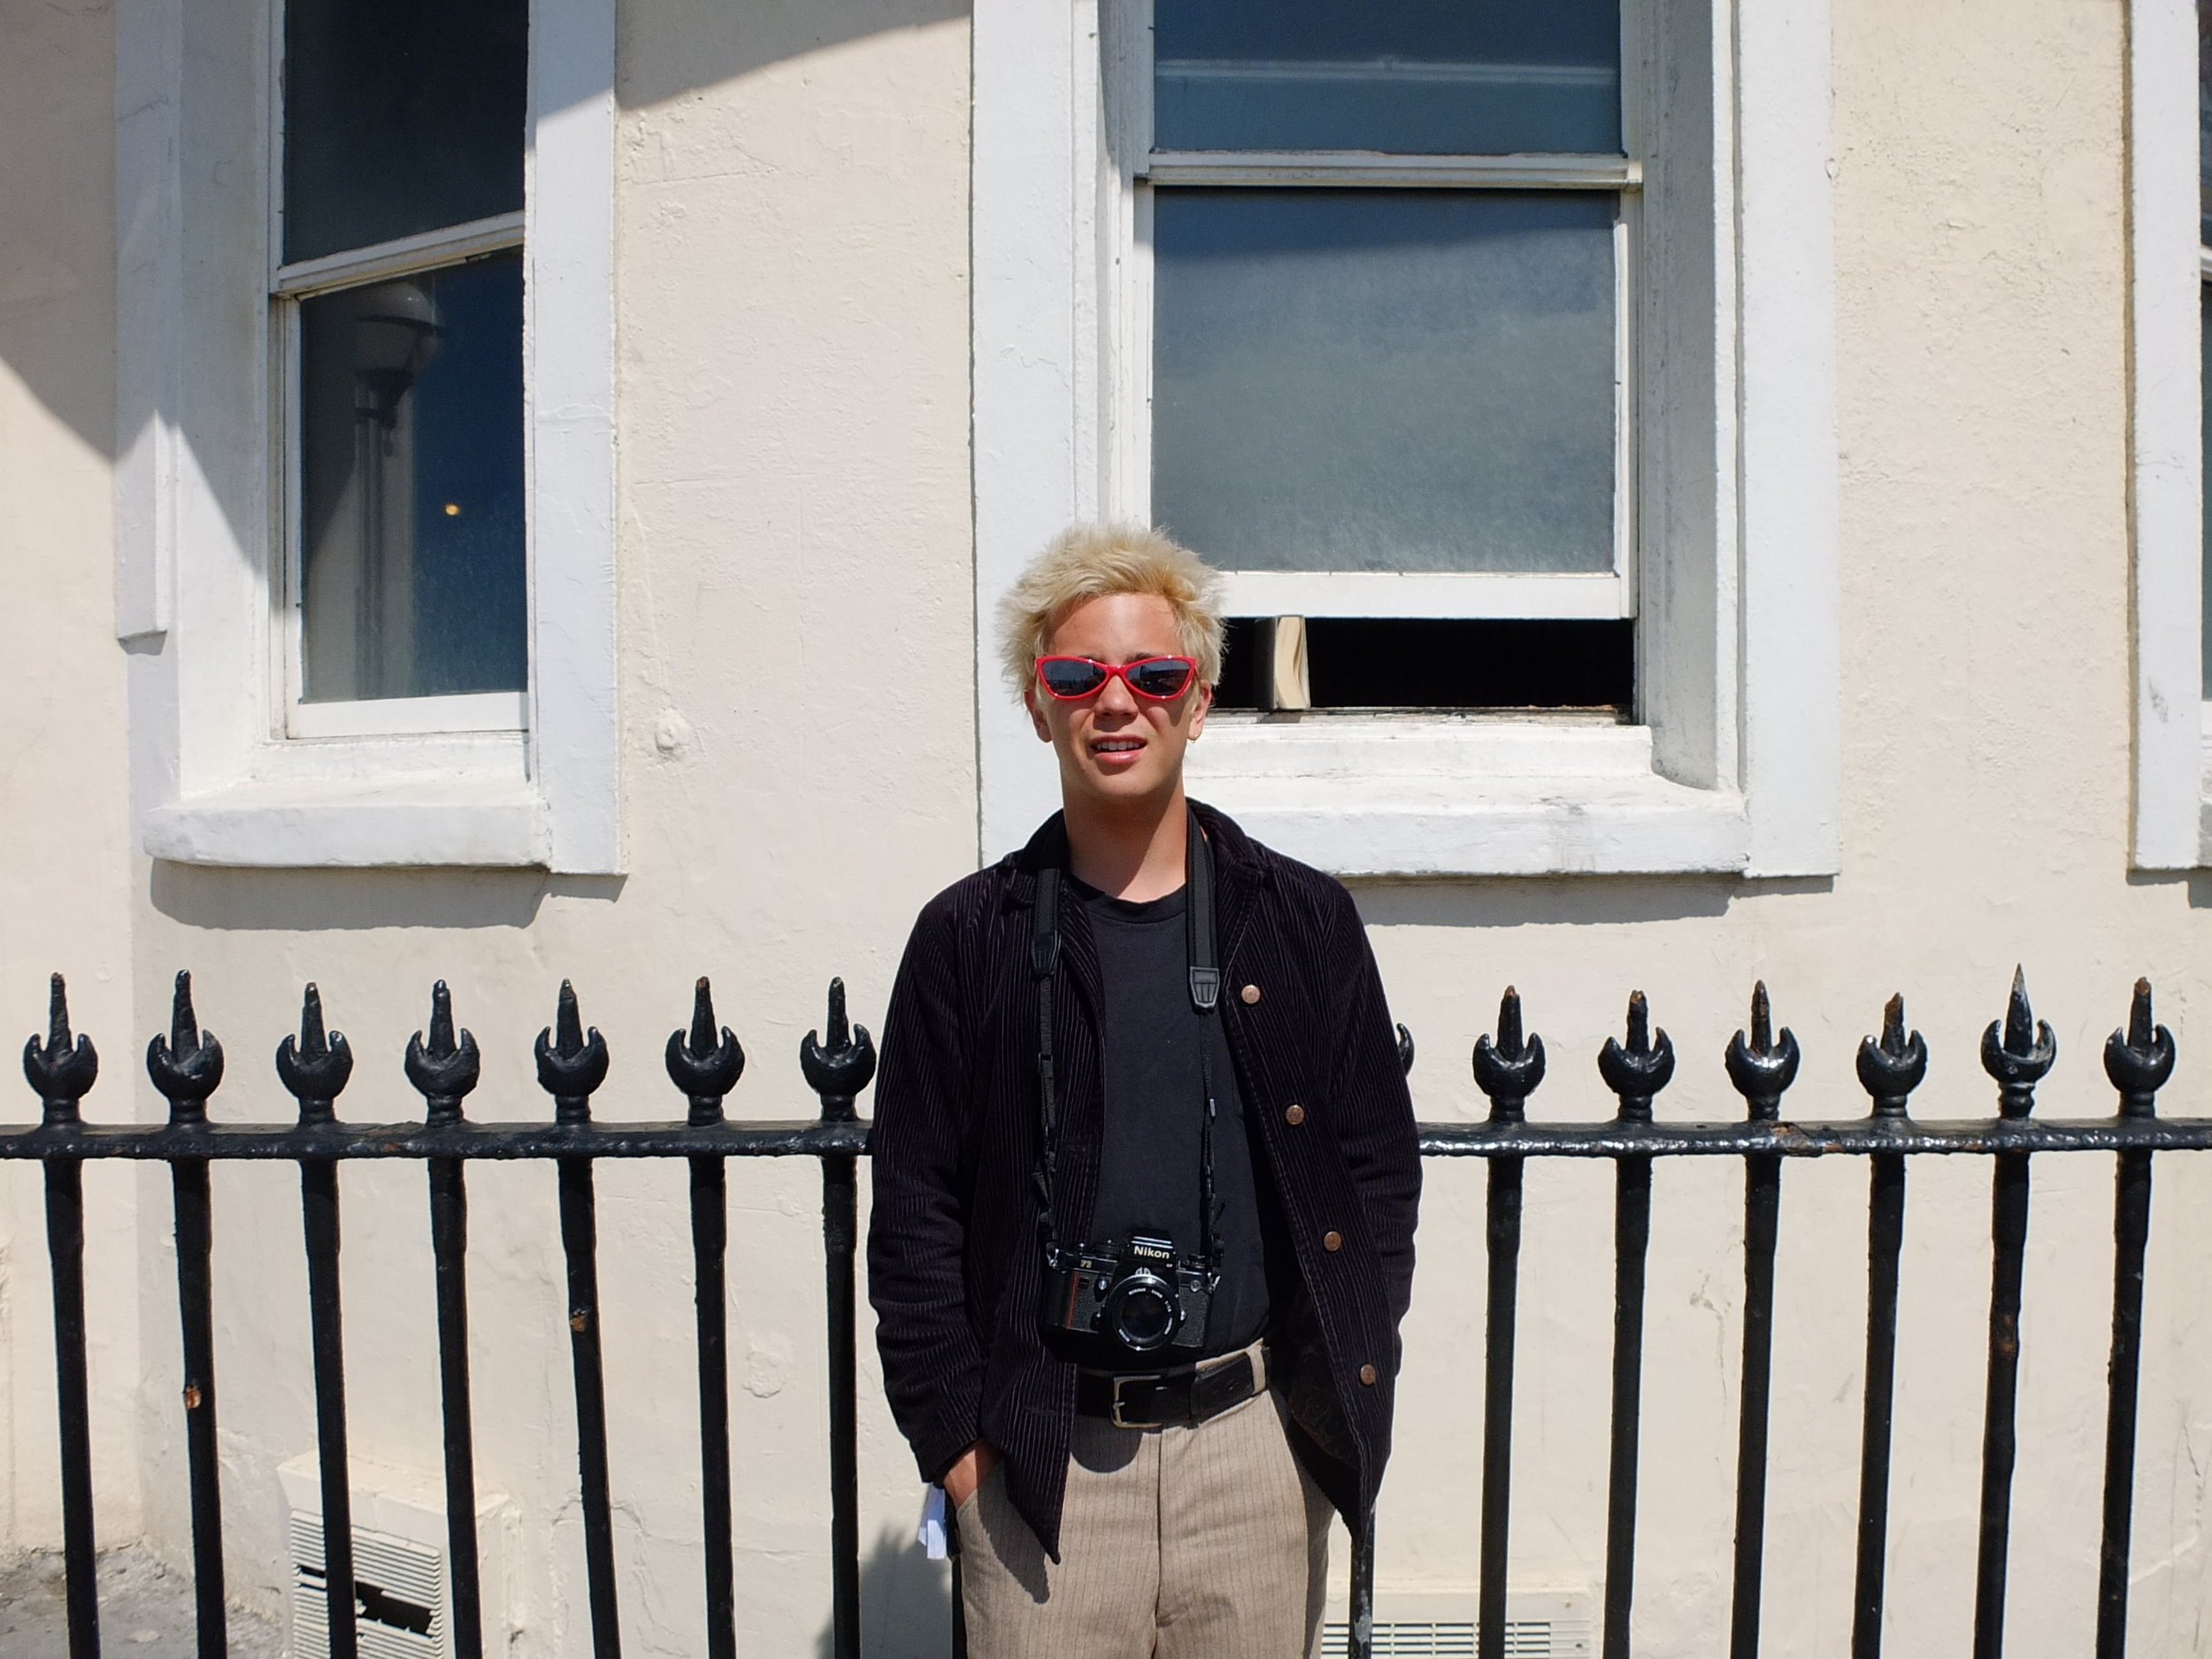 Alec in Brighton, UK. Photo by Shaun Couture